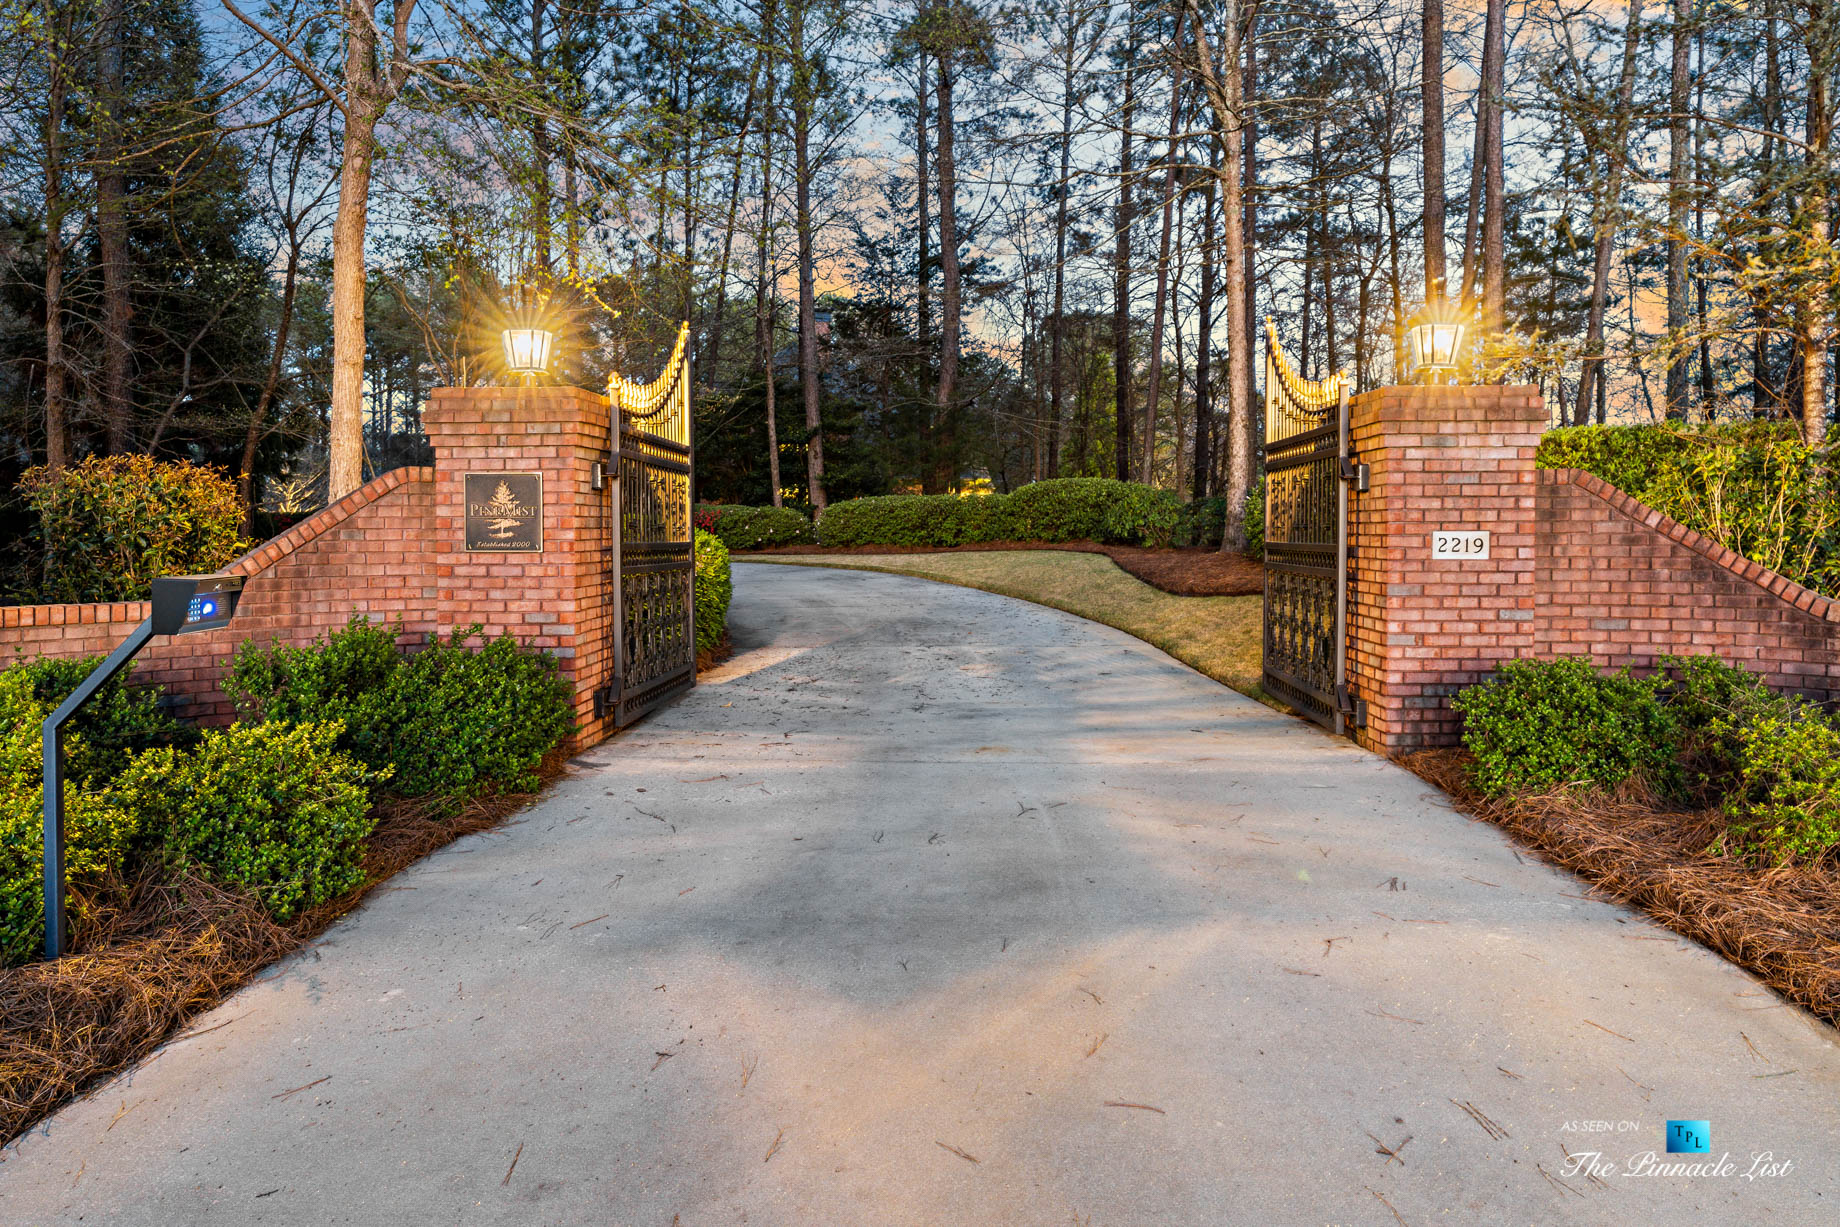 2219 Costley Mill Rd NE, Conyers, GA, USA - Front Gate - Luxury Real Estate - Equestrian Country Home